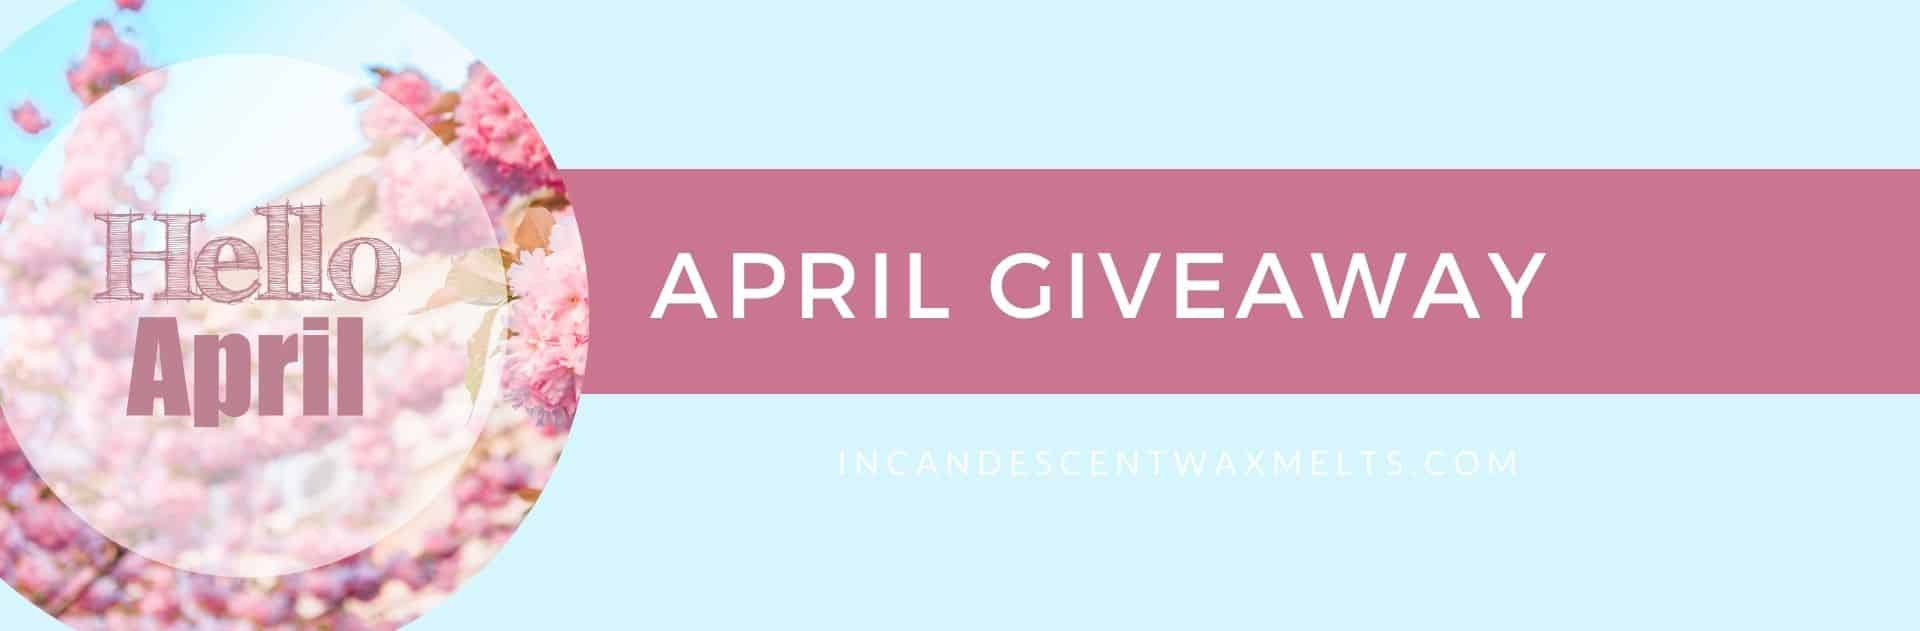 APRIL 2021 GIVEAWAY 1 1